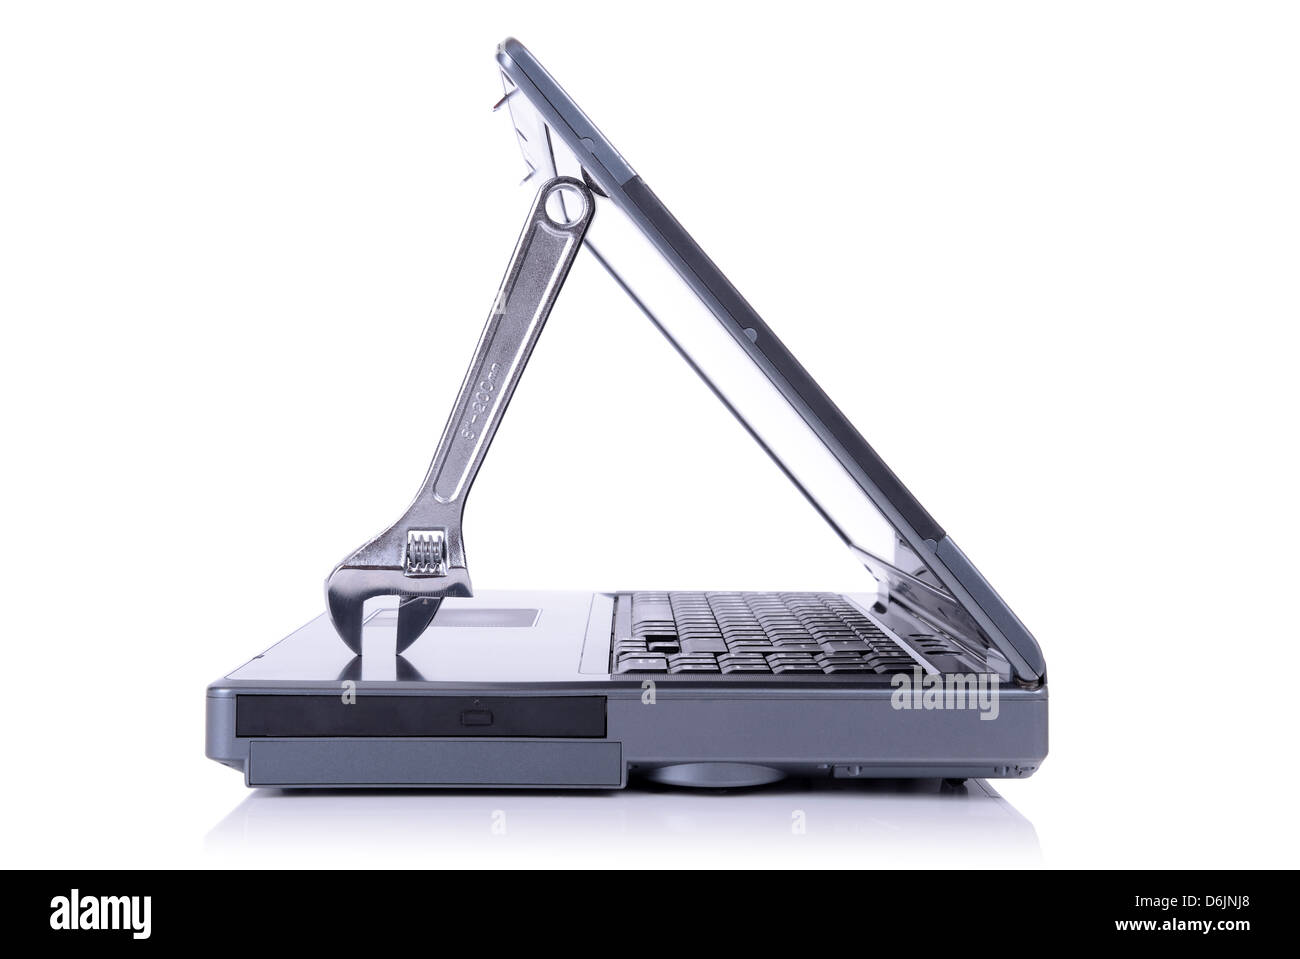 concept of it support with a spanner holding open a laptop isolated on white background - Stock Image